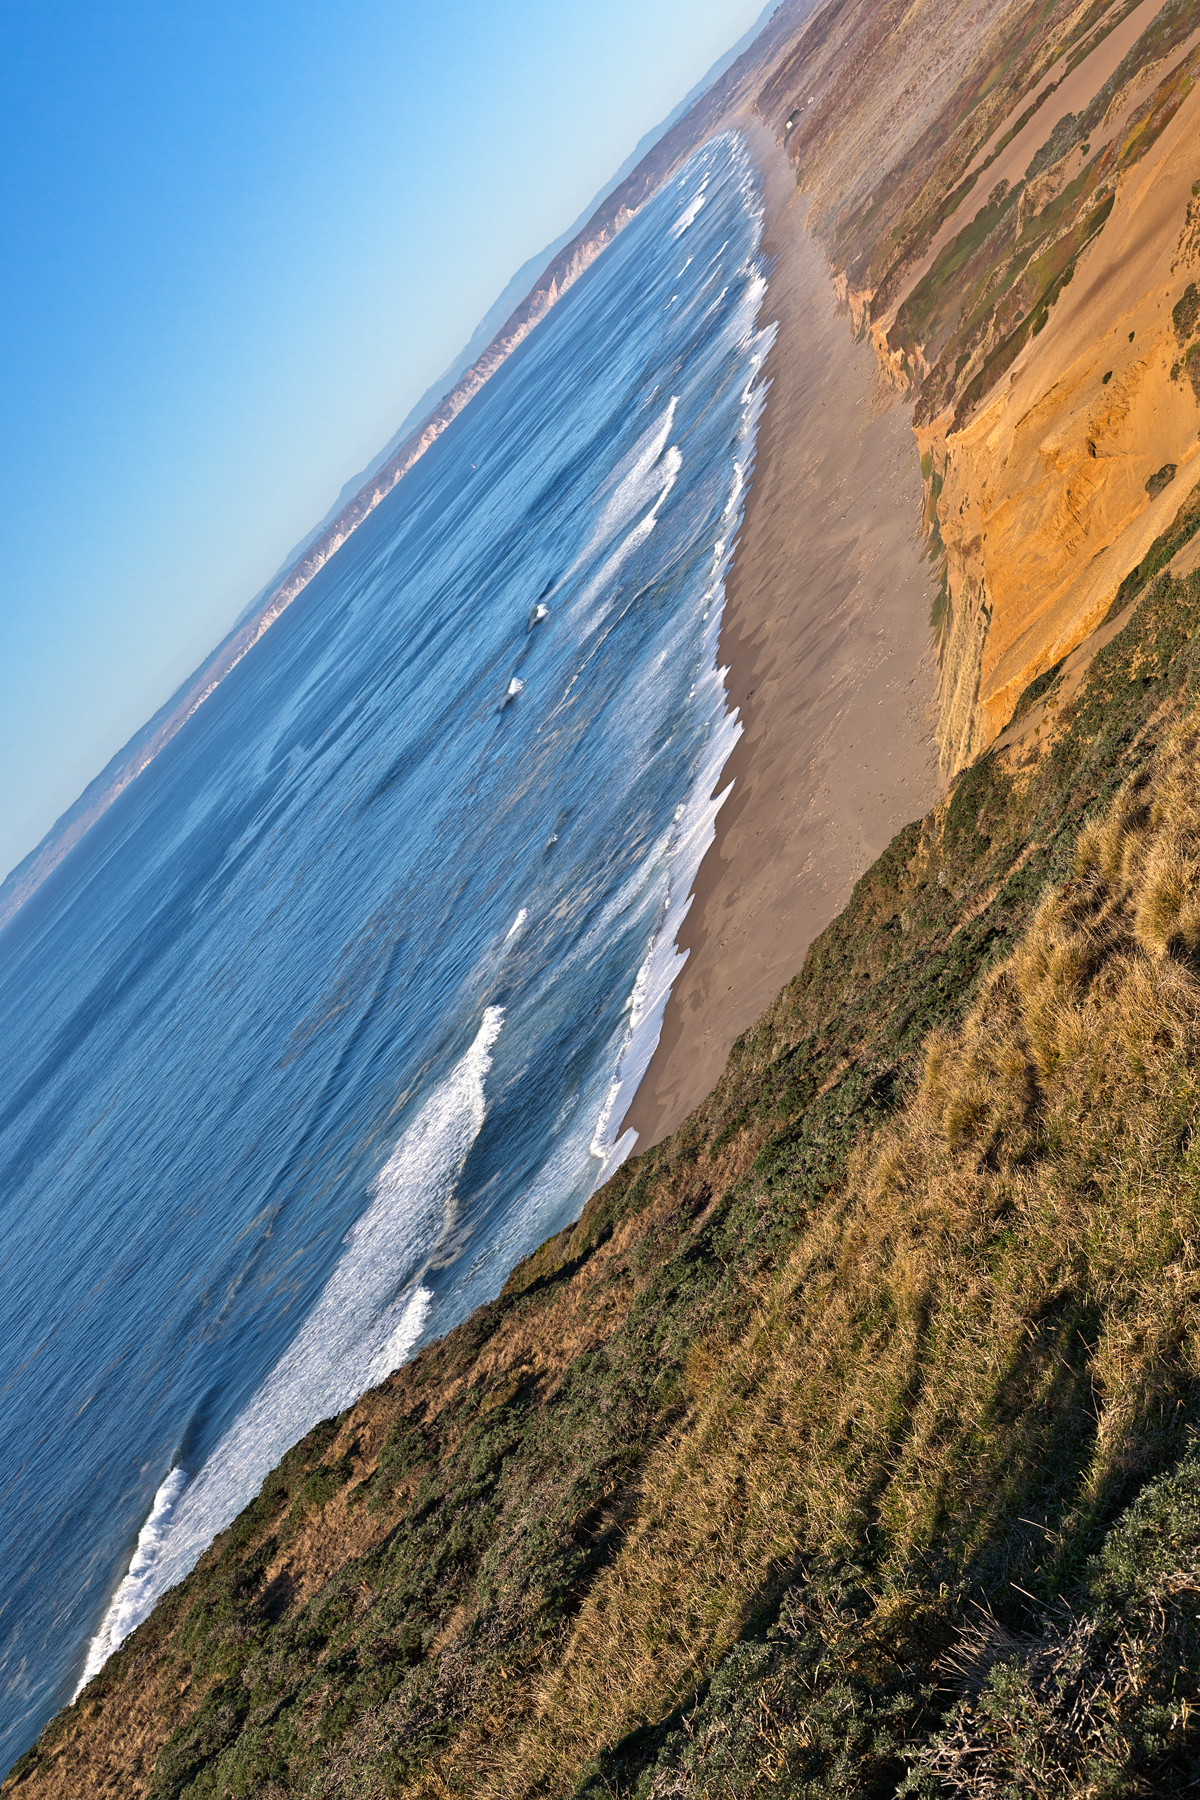 Point reyes coastal scenery - hdr photo